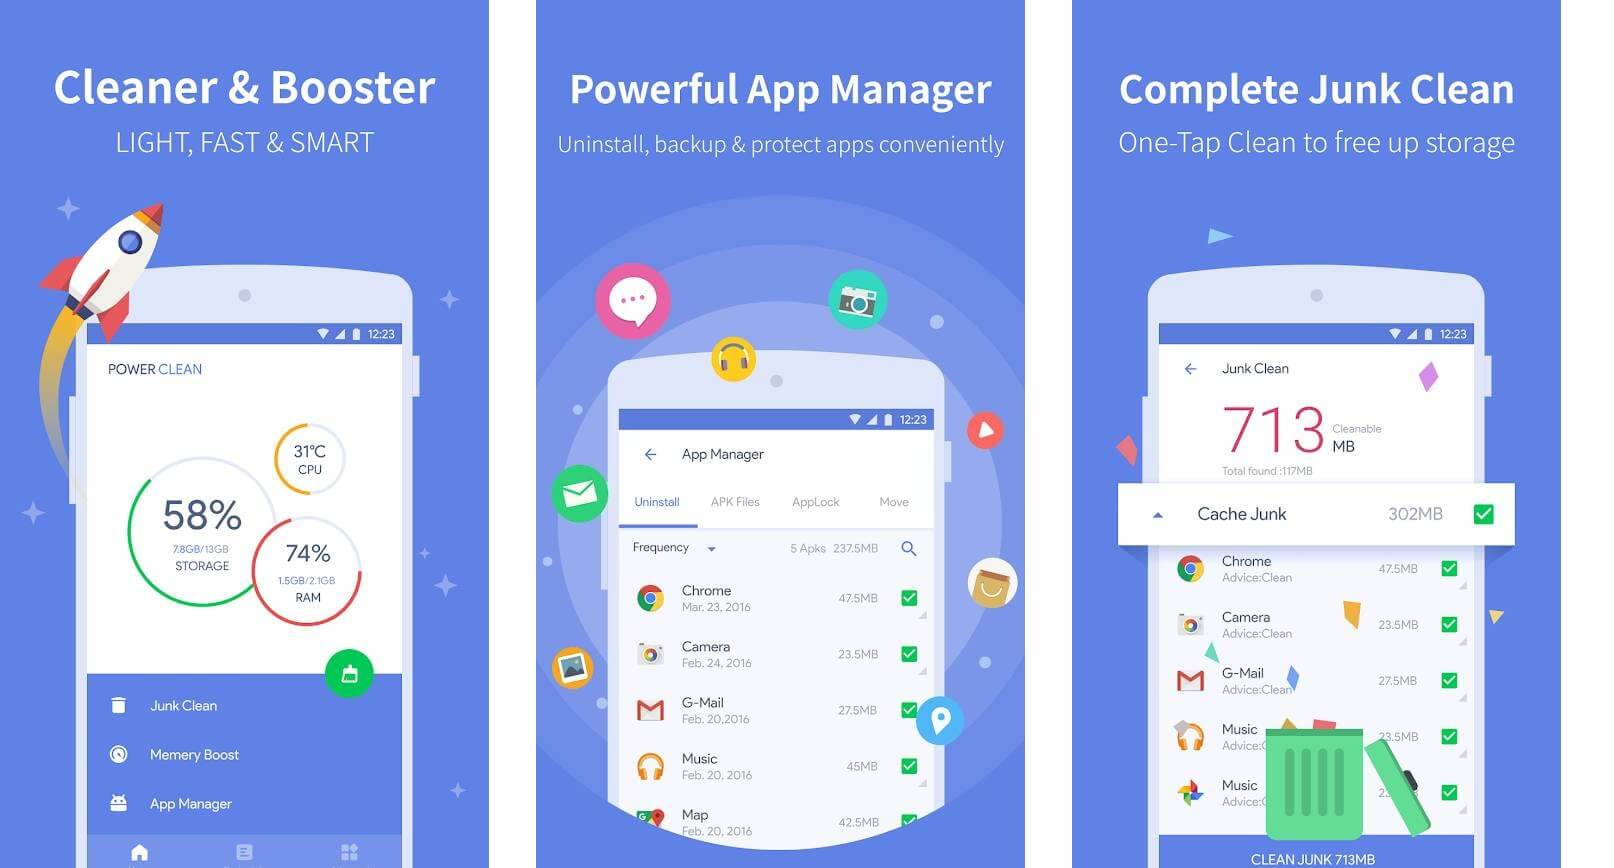 Power Clean (Optimize Cleaner) Best Android Battery Saver App